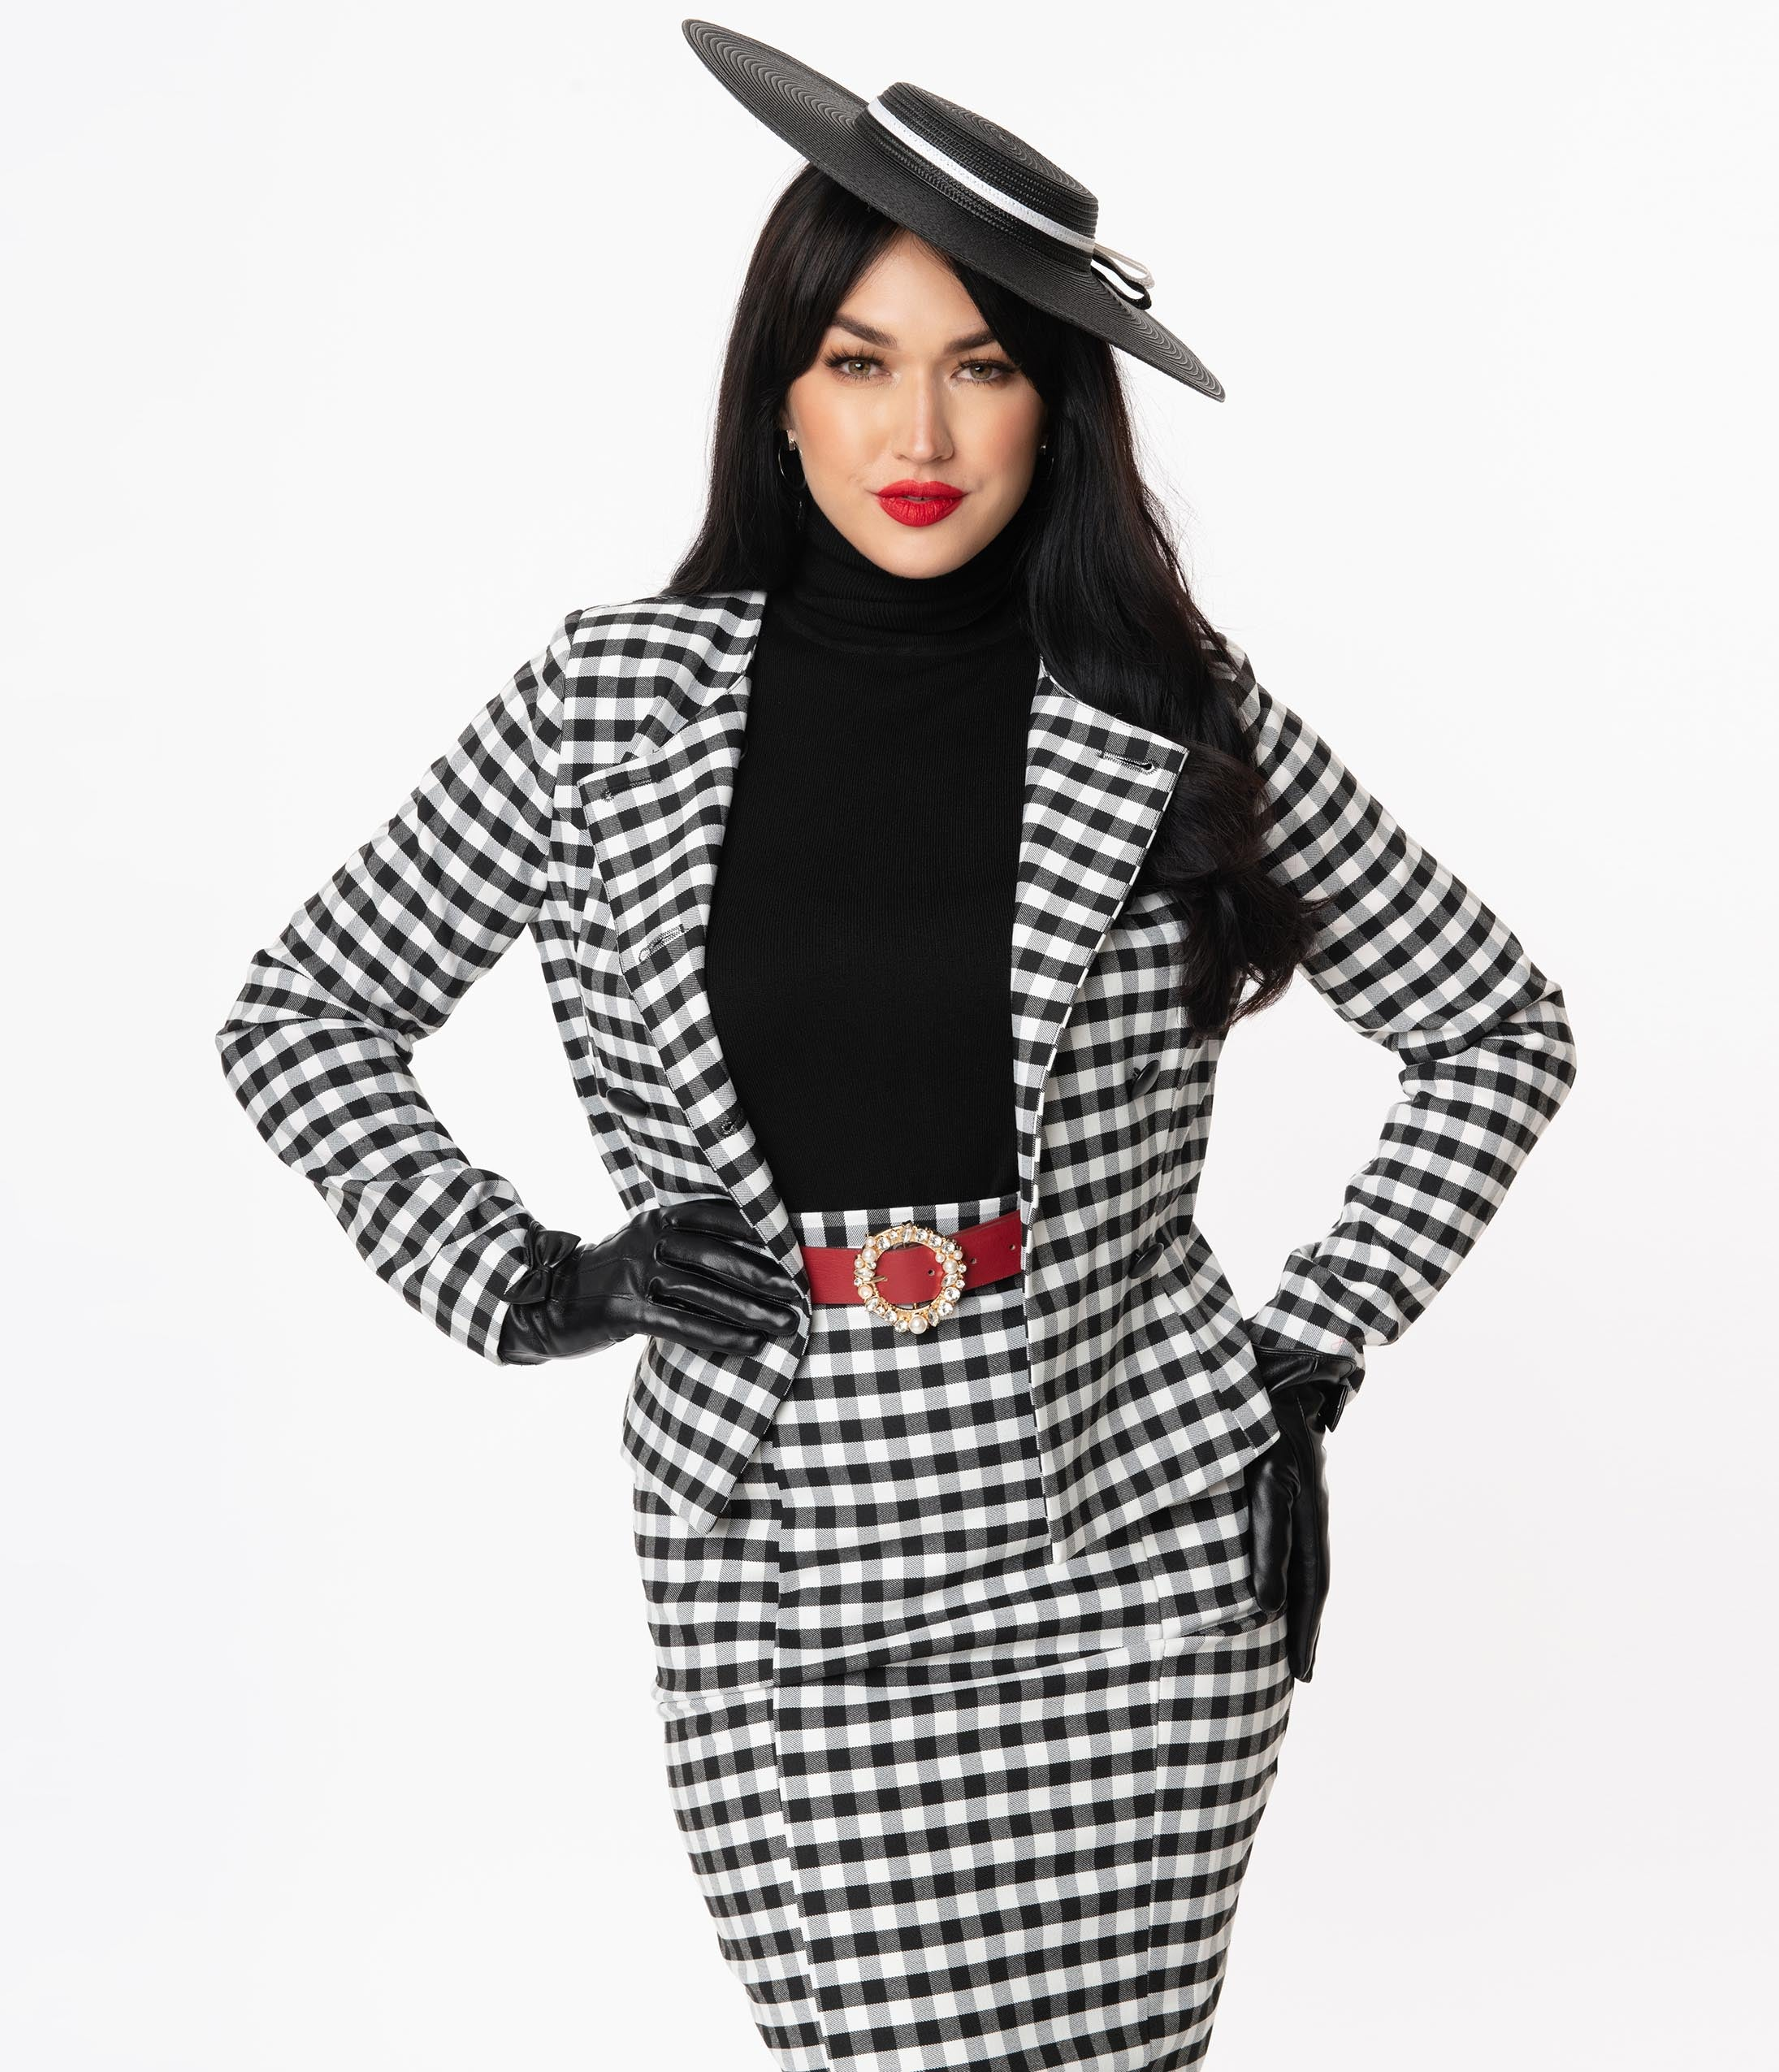 1950s Jackets, Coats, Bolero | Swing, Pin Up, Rockabilly Collectif Black  White Gingham Lorinna Jacket $88.00 AT vintagedancer.com